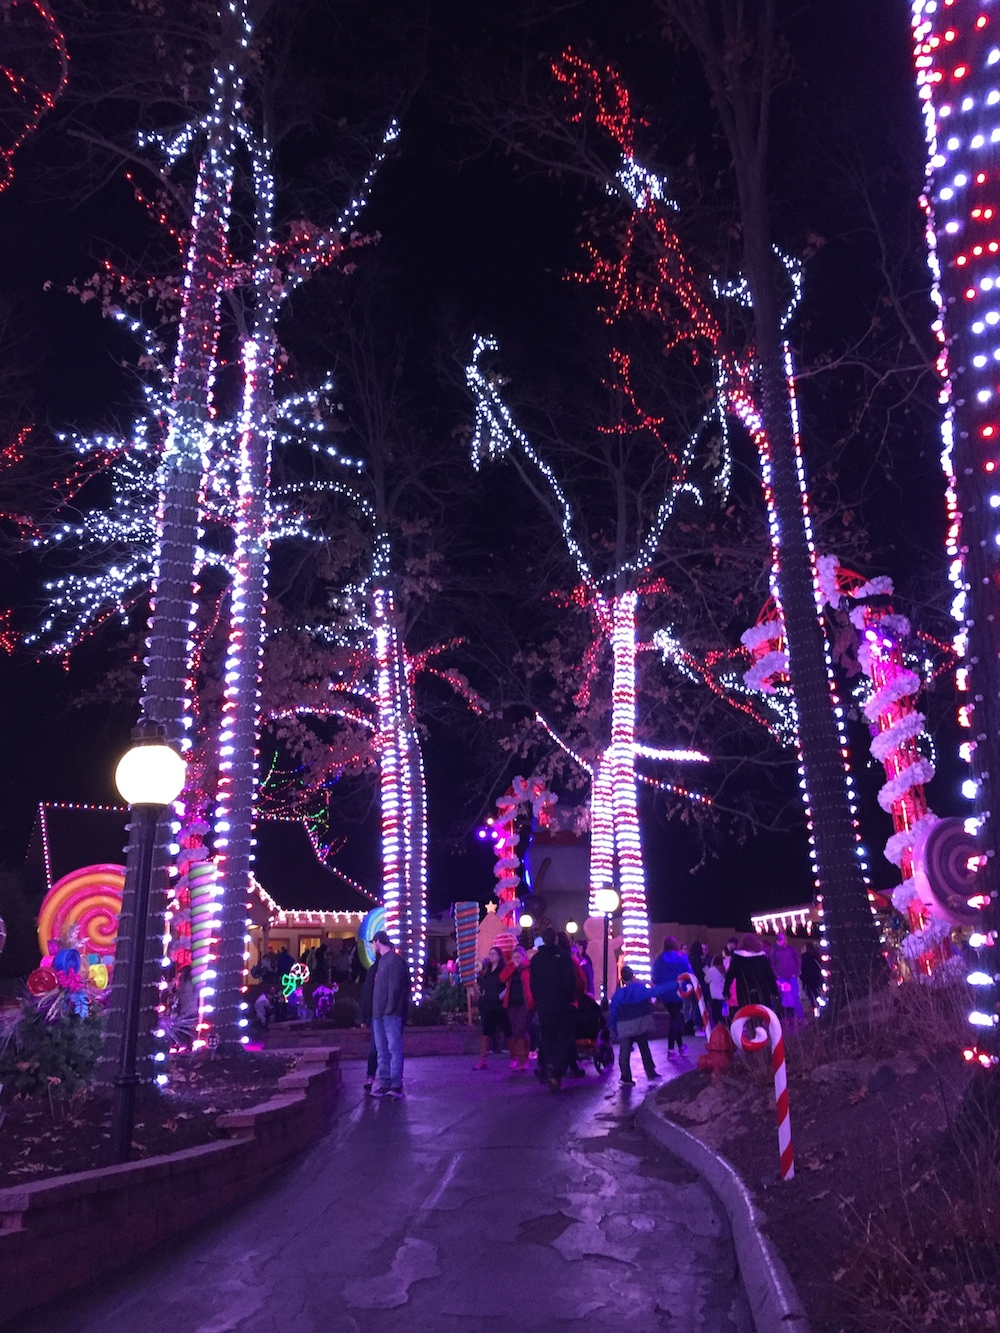 Candy cane lights on trees at Worlds of Fun's WinterFest in Kansas City, Missouri